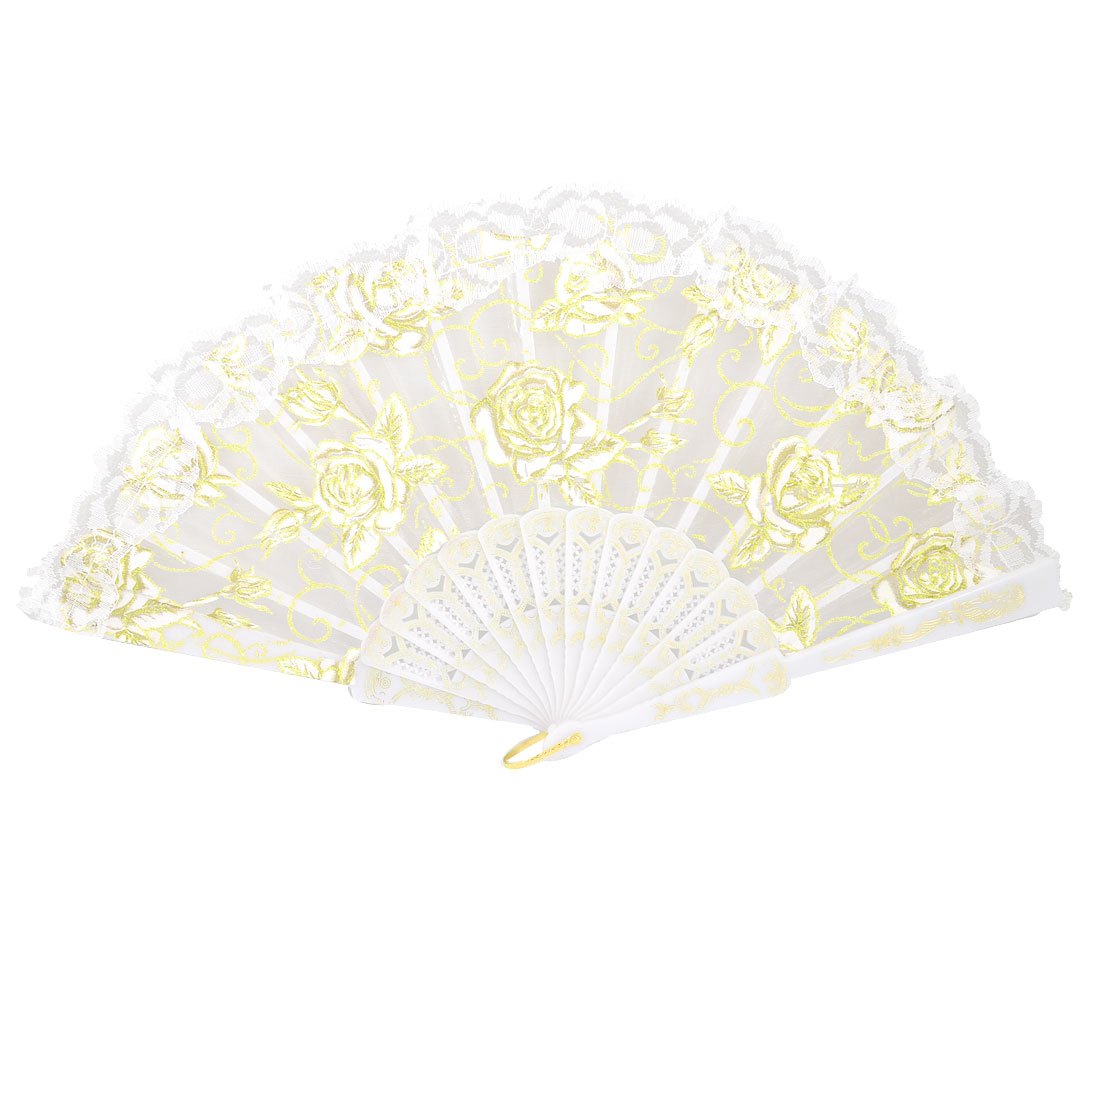 White Foldable Plastic Rib Glittery Floral Gauze Decor Hand Fan